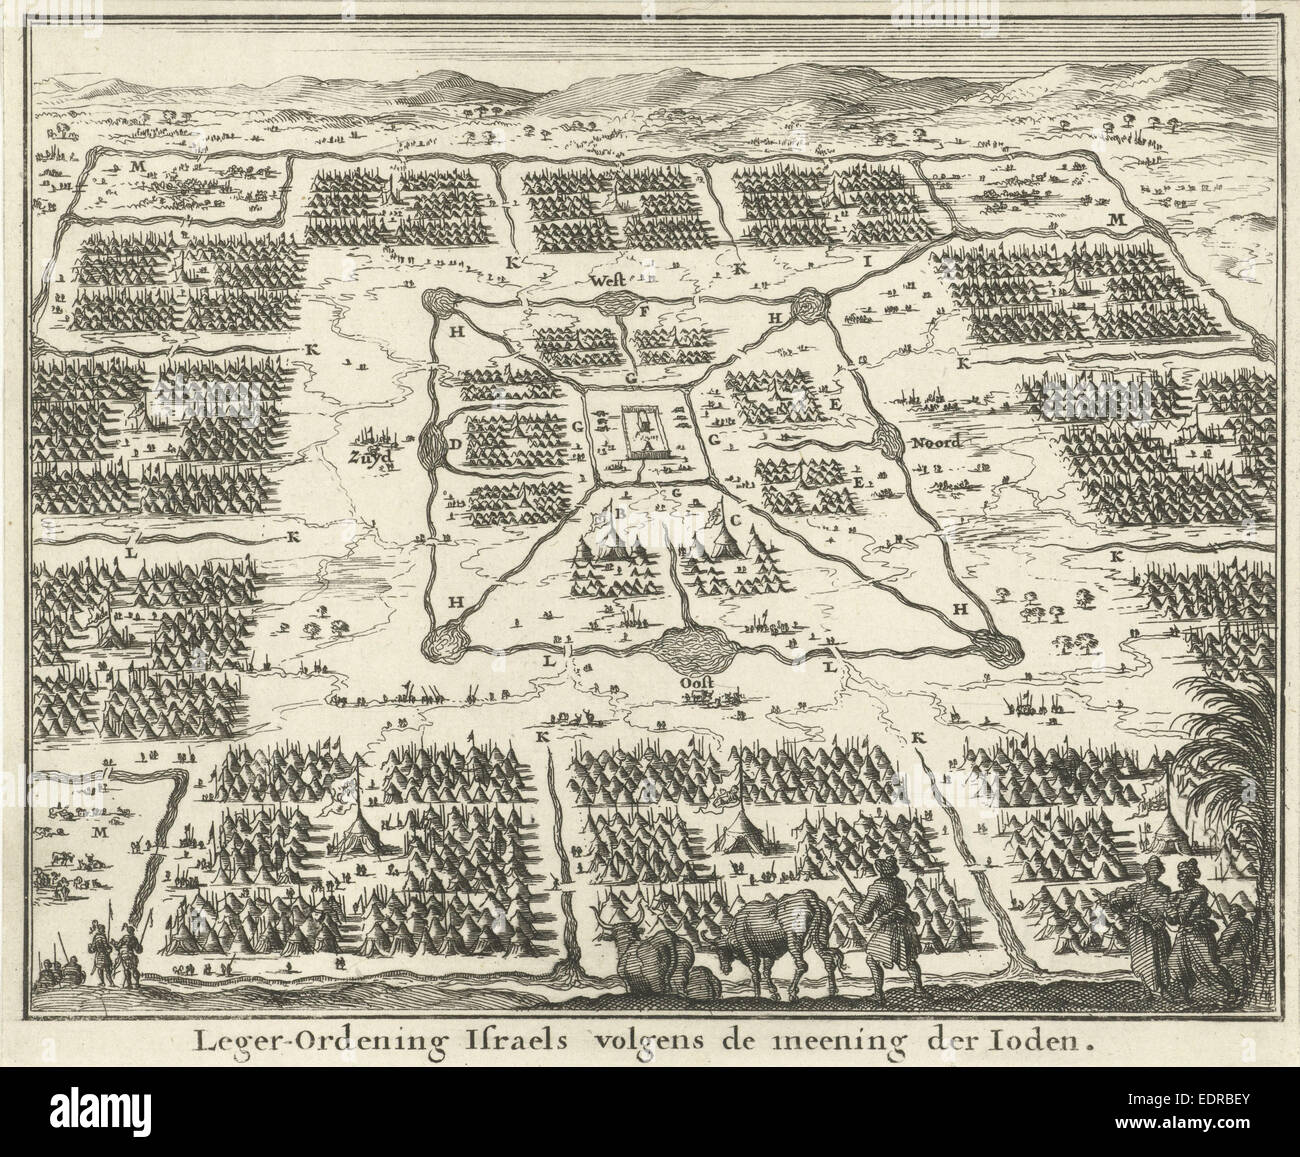 Tabernacle surrounded by camps of the twelve tribes of Israel, Jan Luyken, Willem Goeree, 1683 - Stock Image